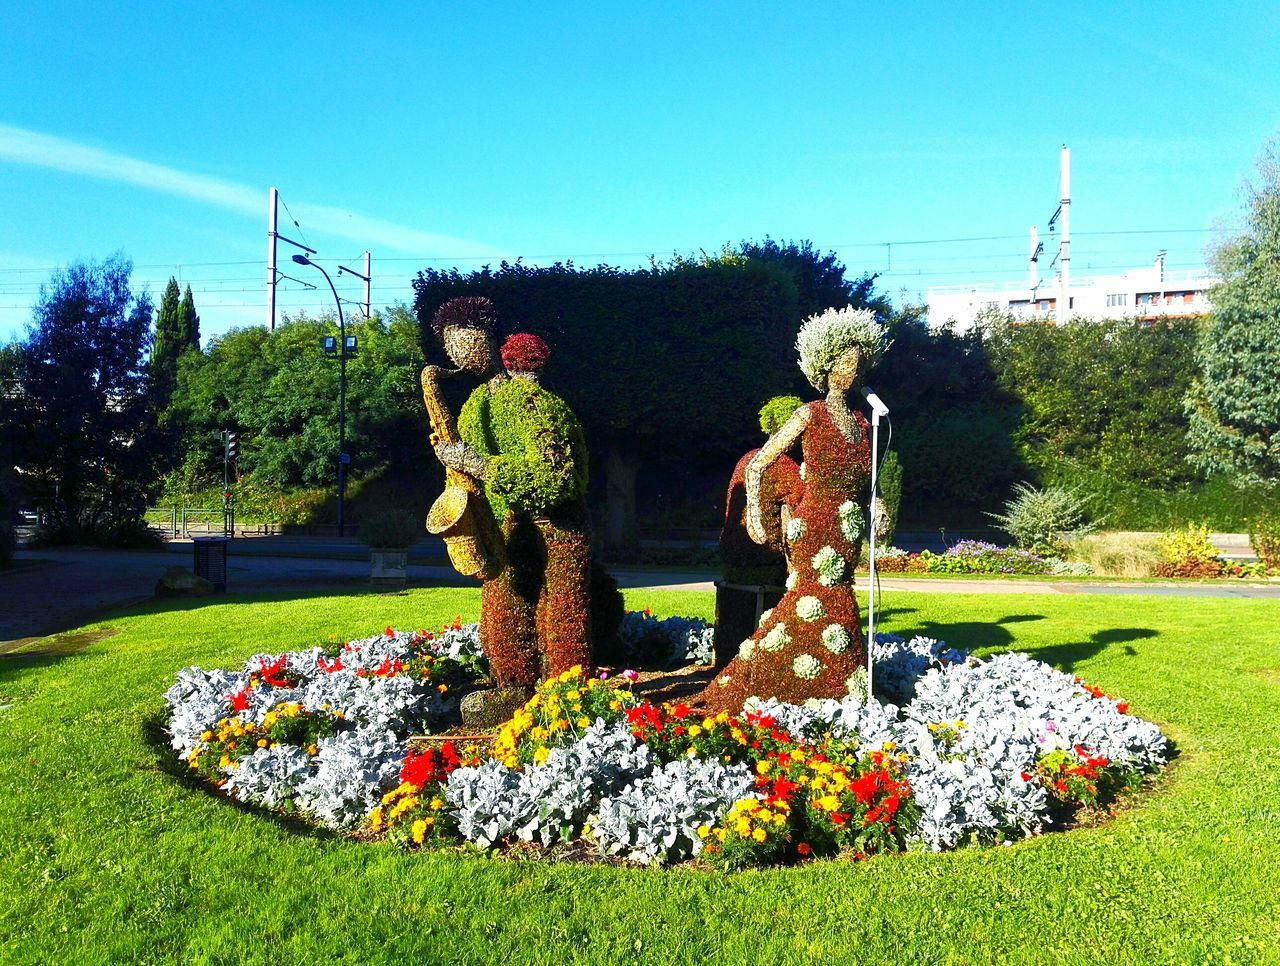 Multi Colored Art Art And Craft Flower Plant Growth Creativity Formal Garden Bouquet Decoration Park - Man Made Space Green Color Nature Day Colorful Freshness Garden No People